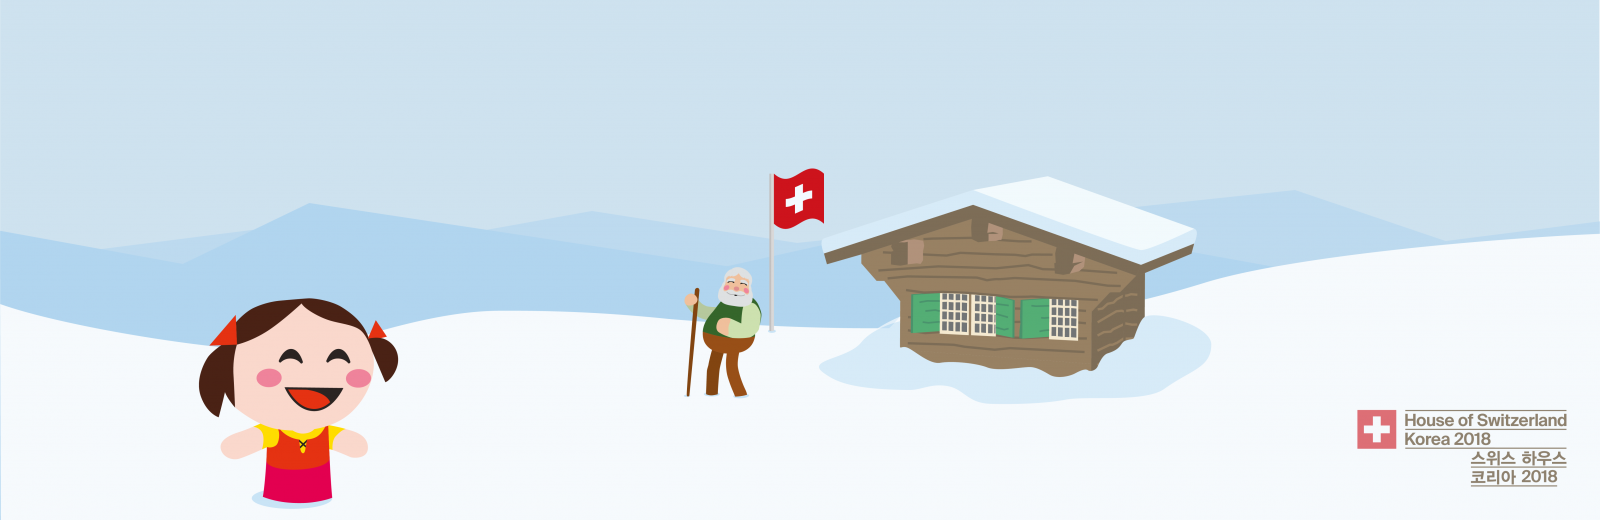 PyeongChang 2018 - House of Switzerland